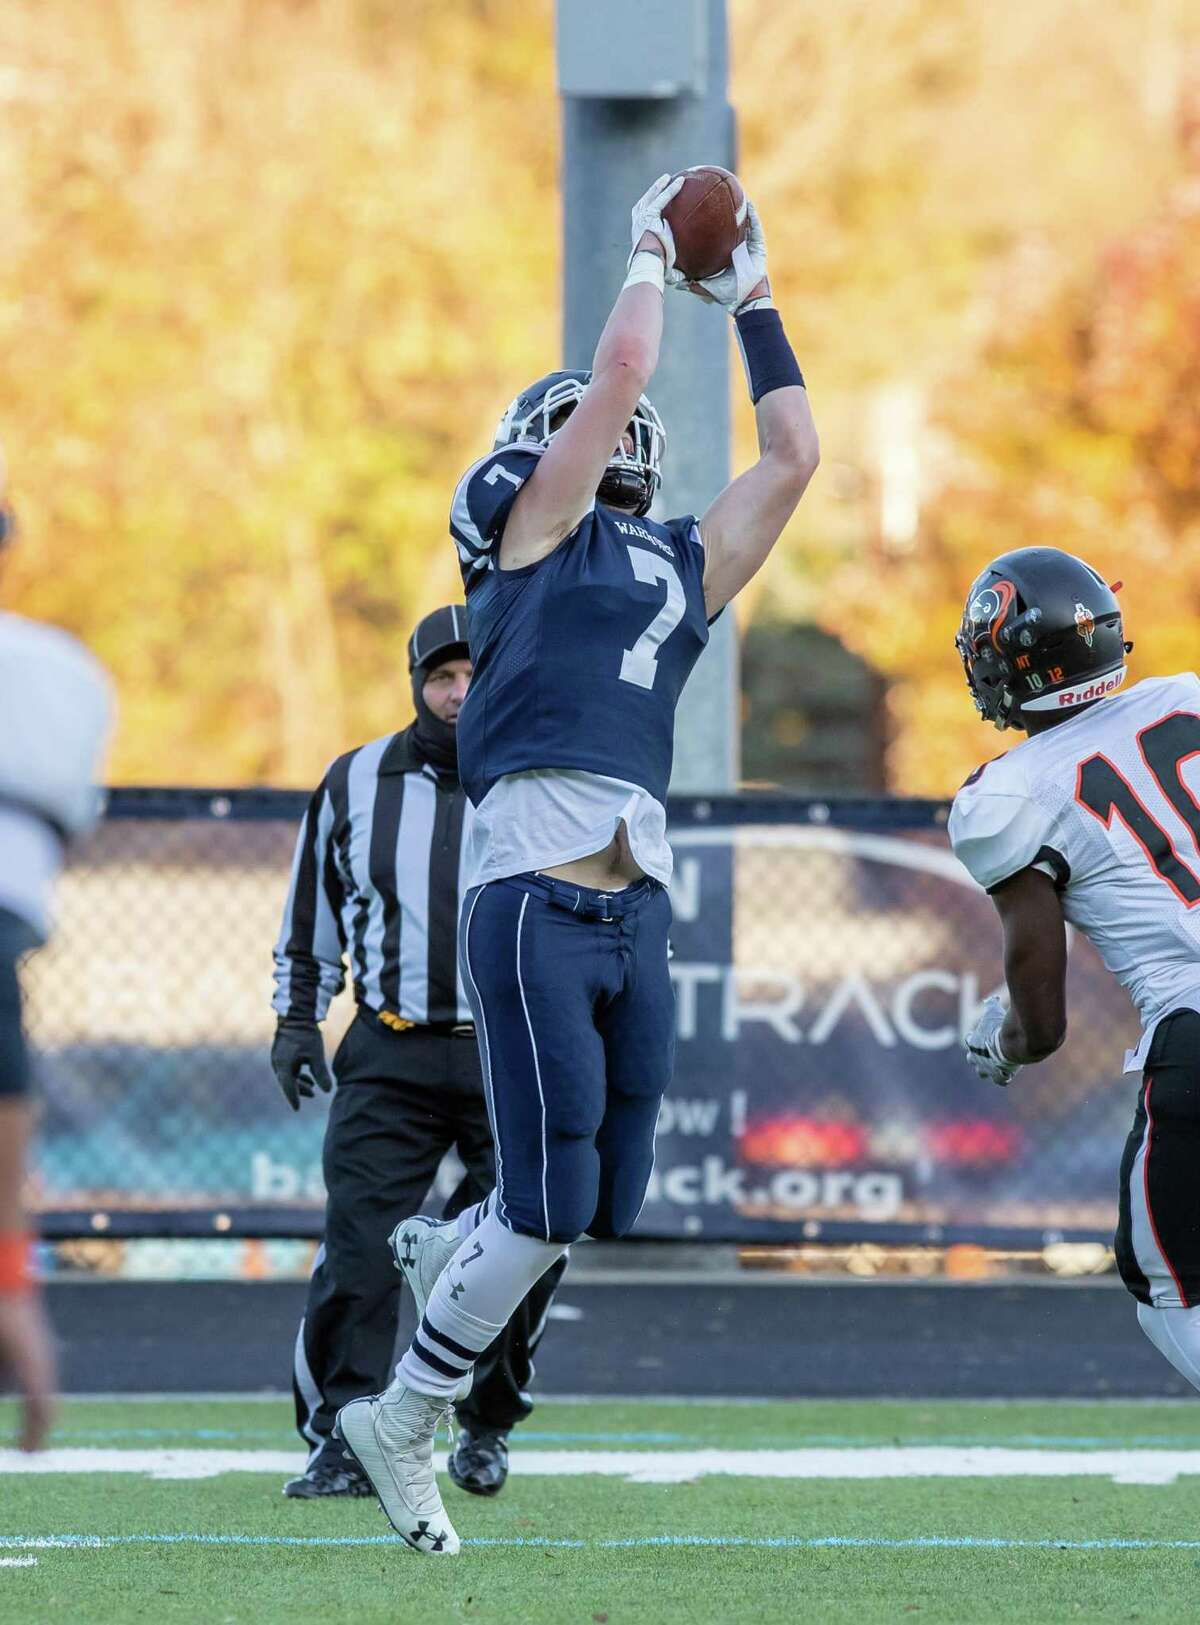 Michael Coffey snags a pass during Wilton's 42-0 homecoming win over Stamford.